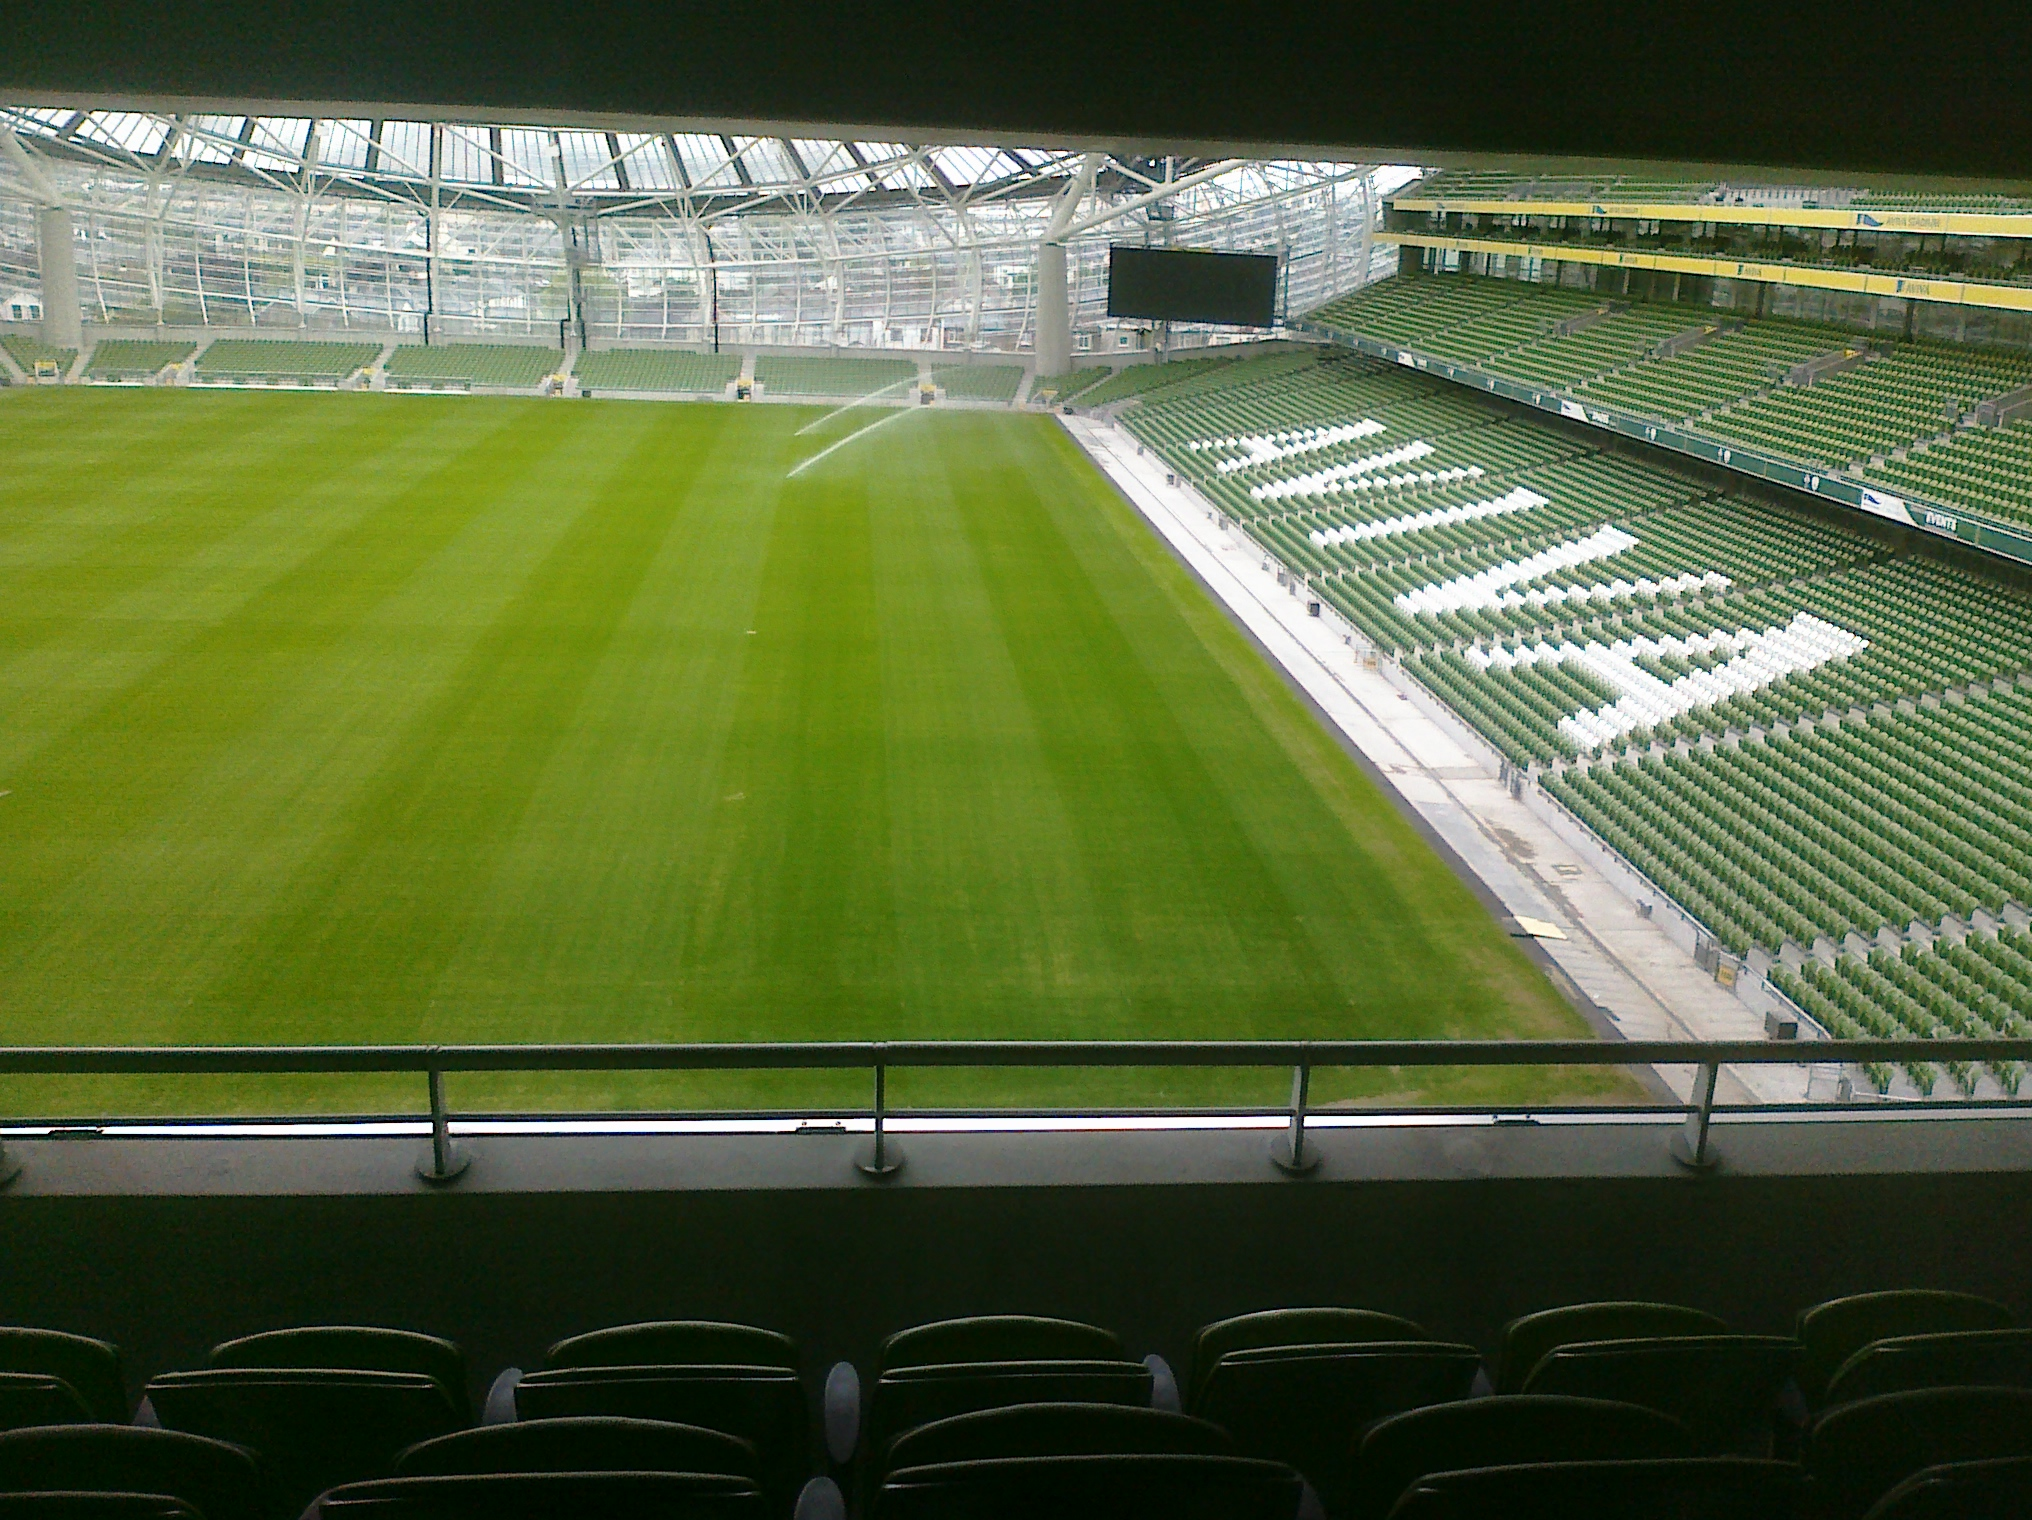 The Aviva Stadium at Landsdowne Road